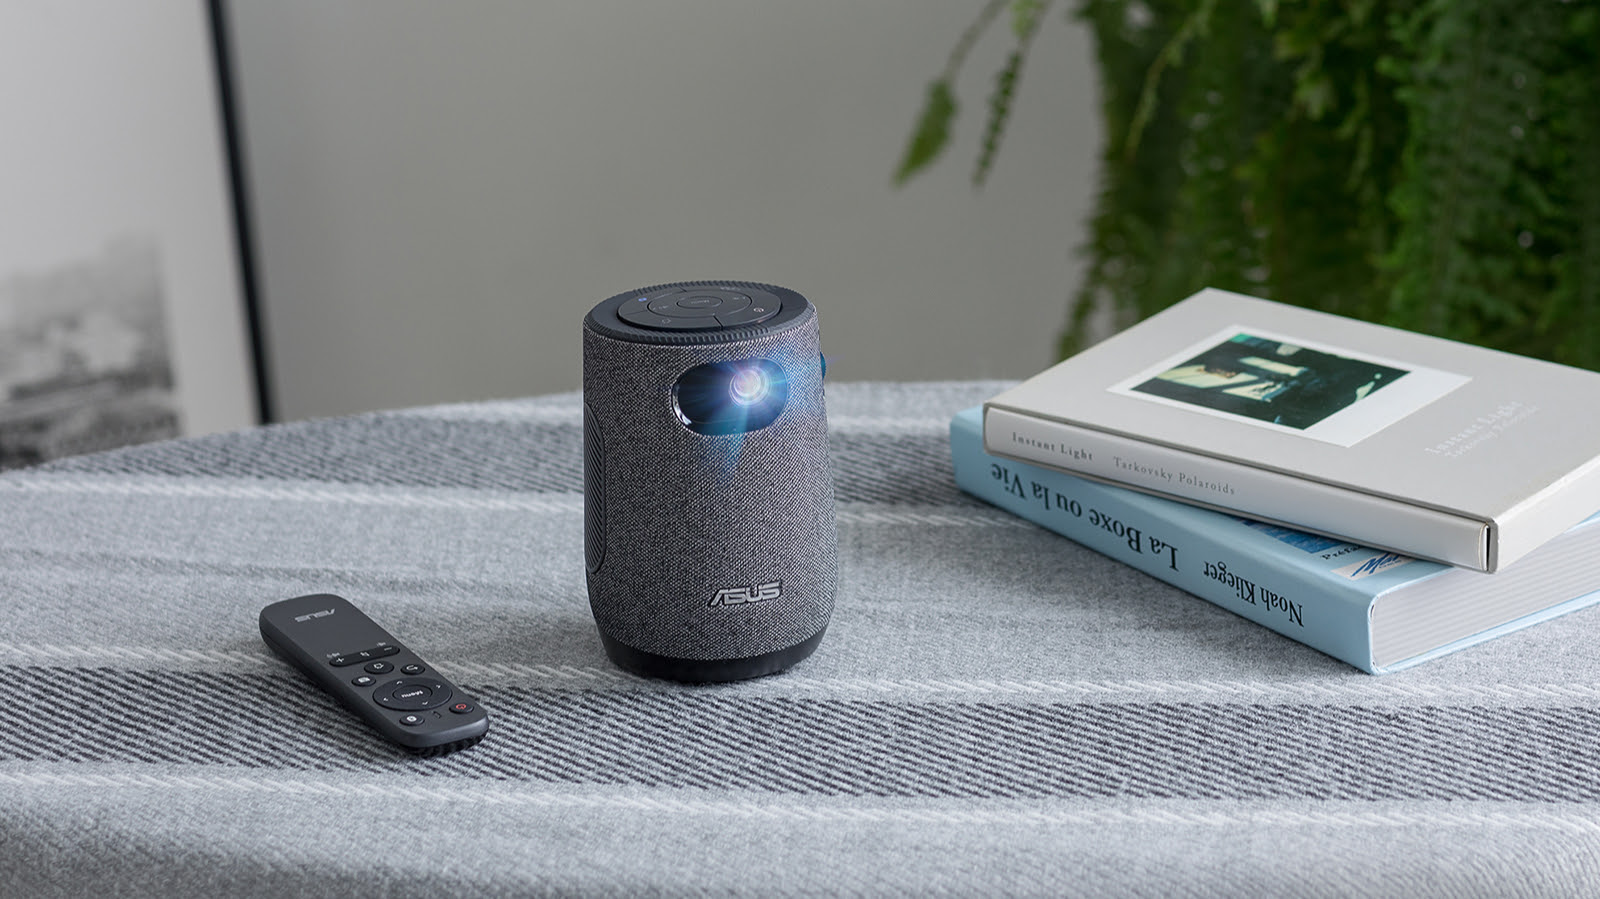 CES 2021: The ASUS ZenBeam Latte is a coffee cup-sized portable projector